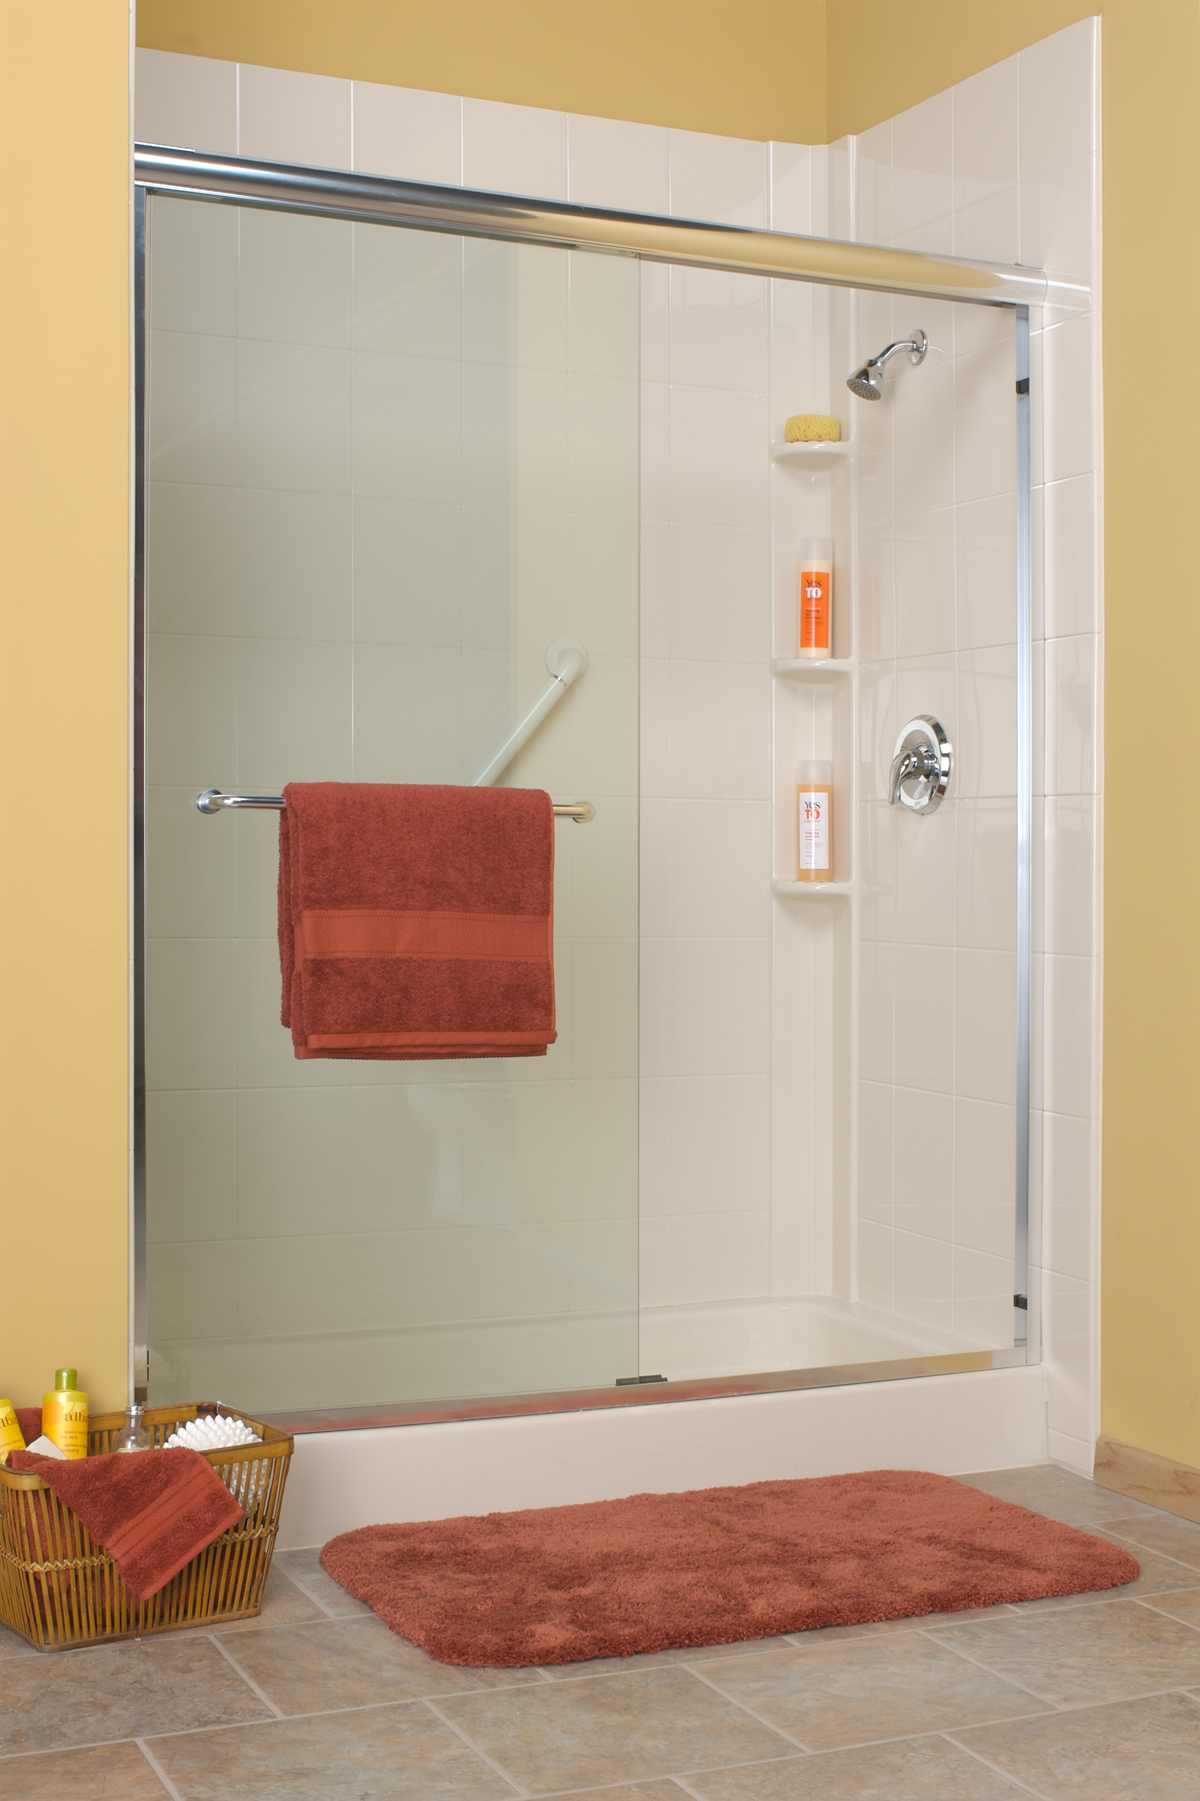 Bathroom Ideas Replace Tub With Shower : Replace tub shower san antonio tx austin